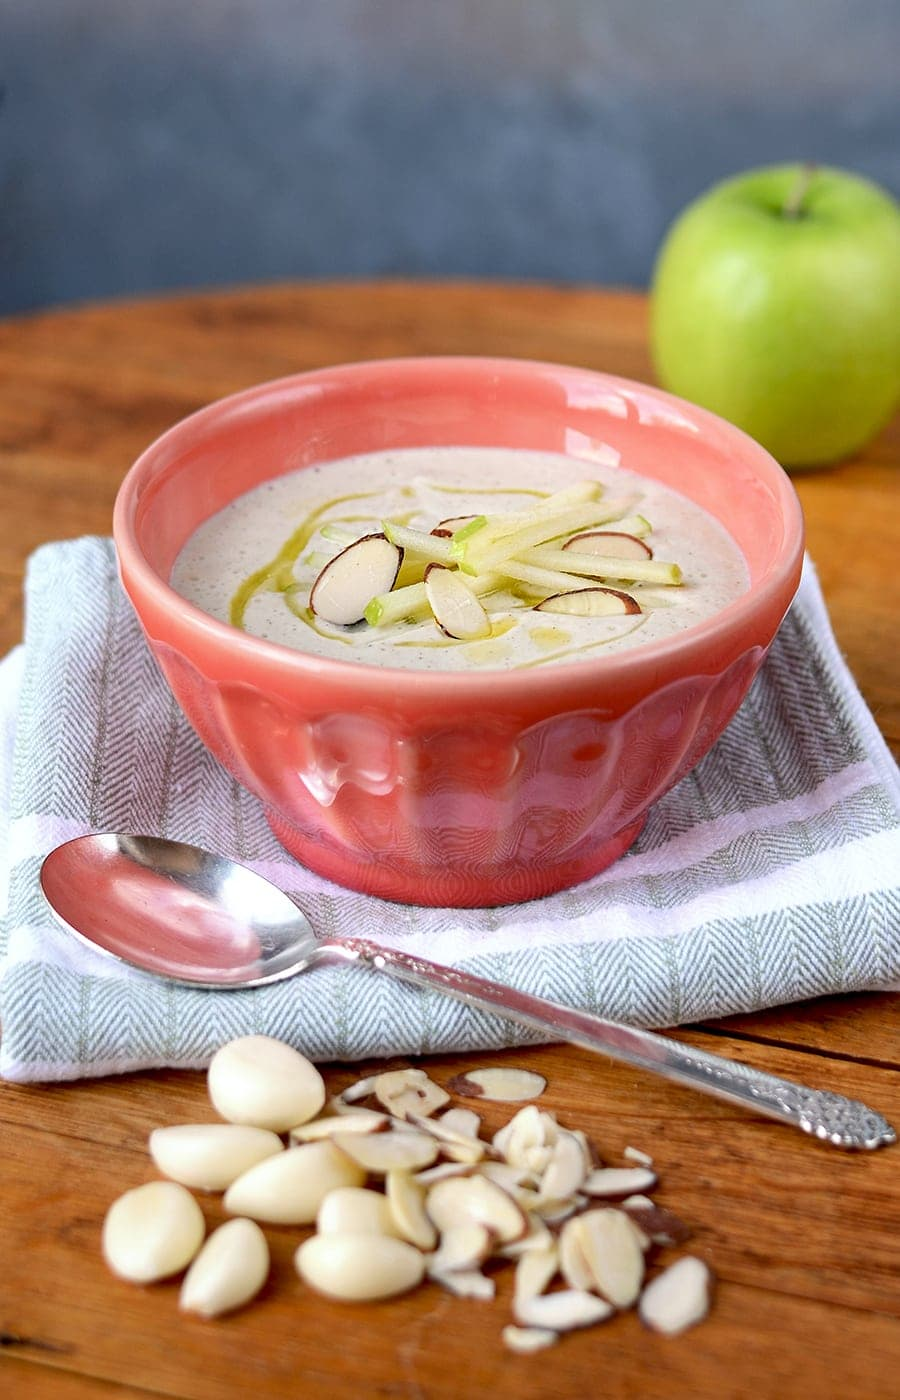 Ajo Blanco is a savory cold soup made with almonds and garlic from Spain. This version uses crisp green apples for a fresh tart flavor.